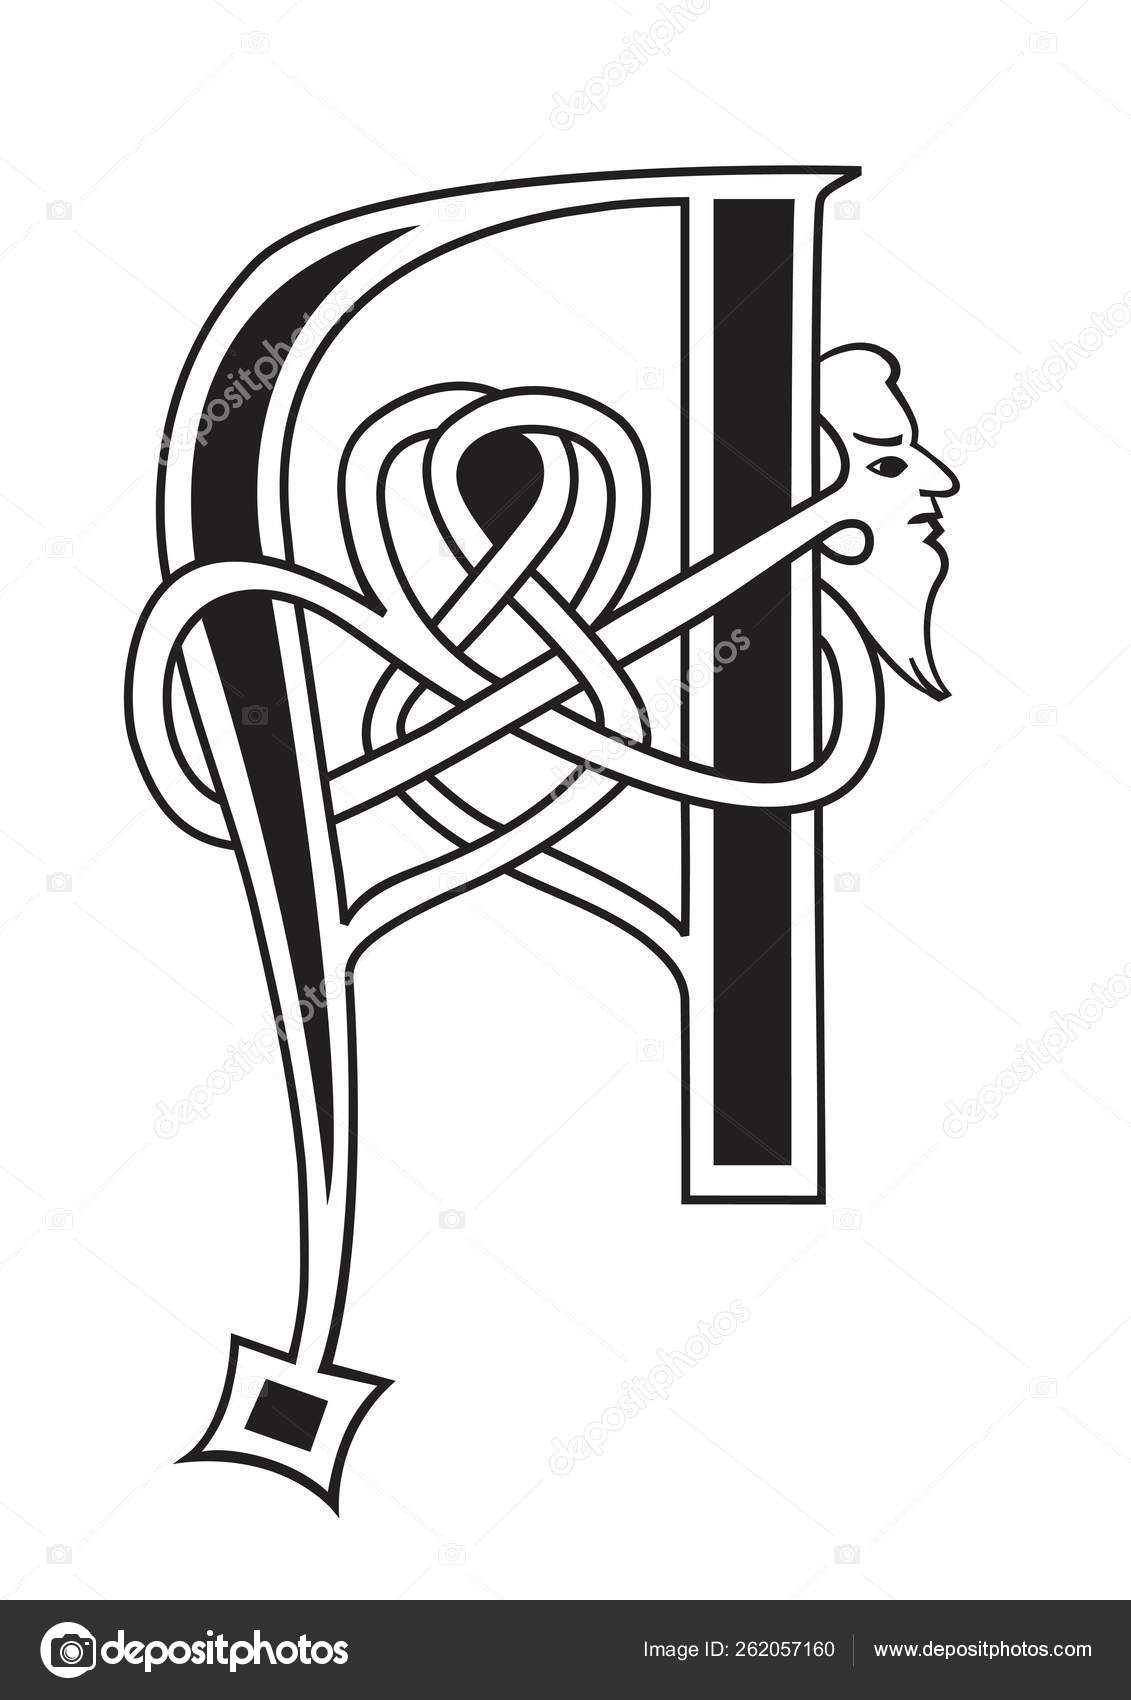 Decorative Letter A.Decorative Capital Medieval Illuminated Letter Initial